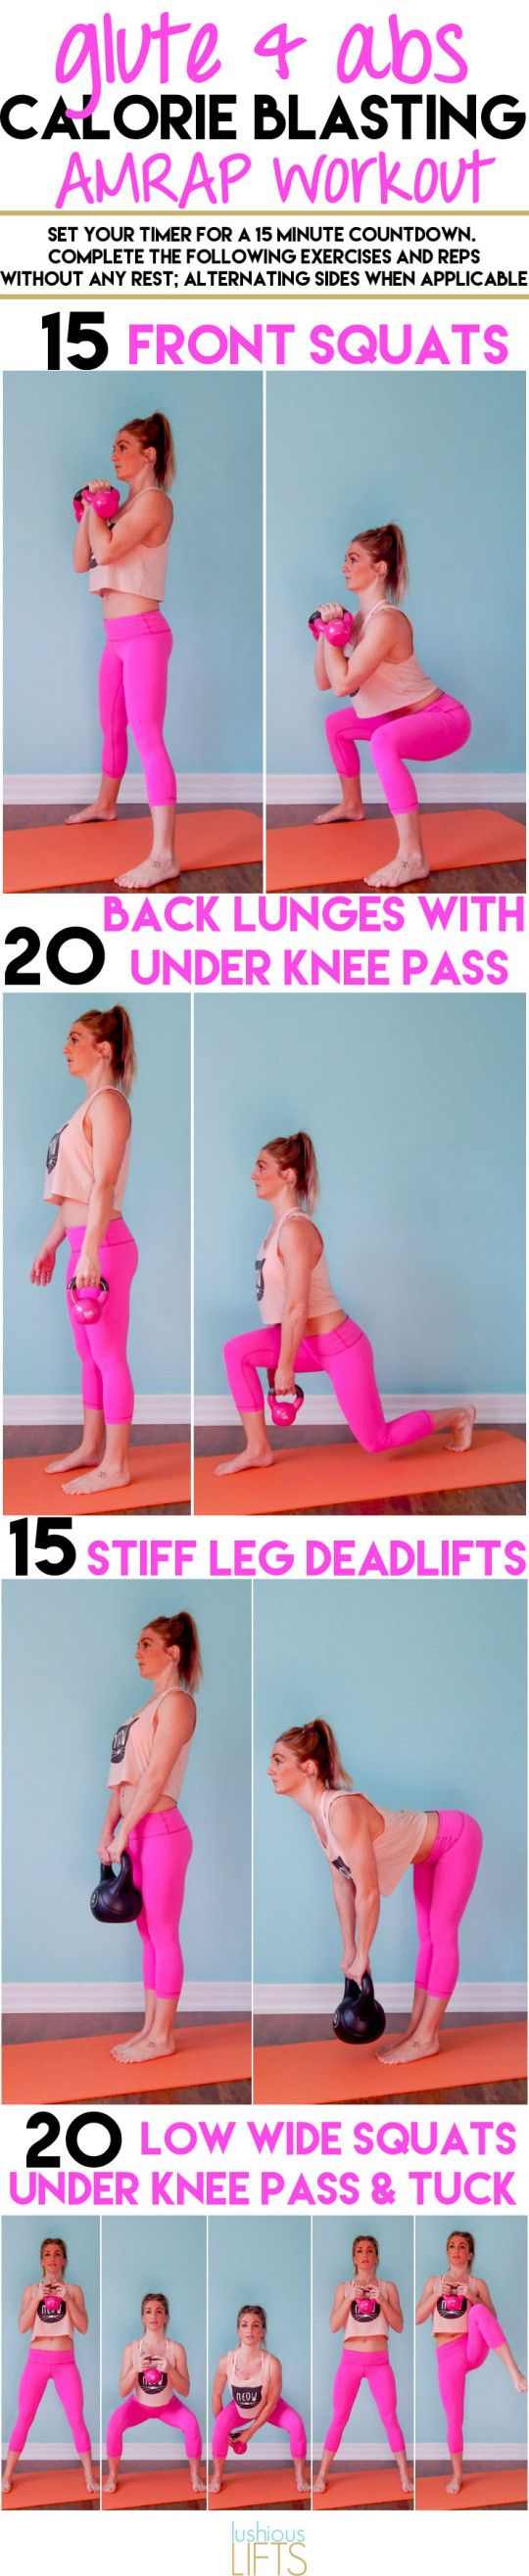 15 minute Glute and Abs Calorie Blasting AMRAP Workout    lushiouslifts.com